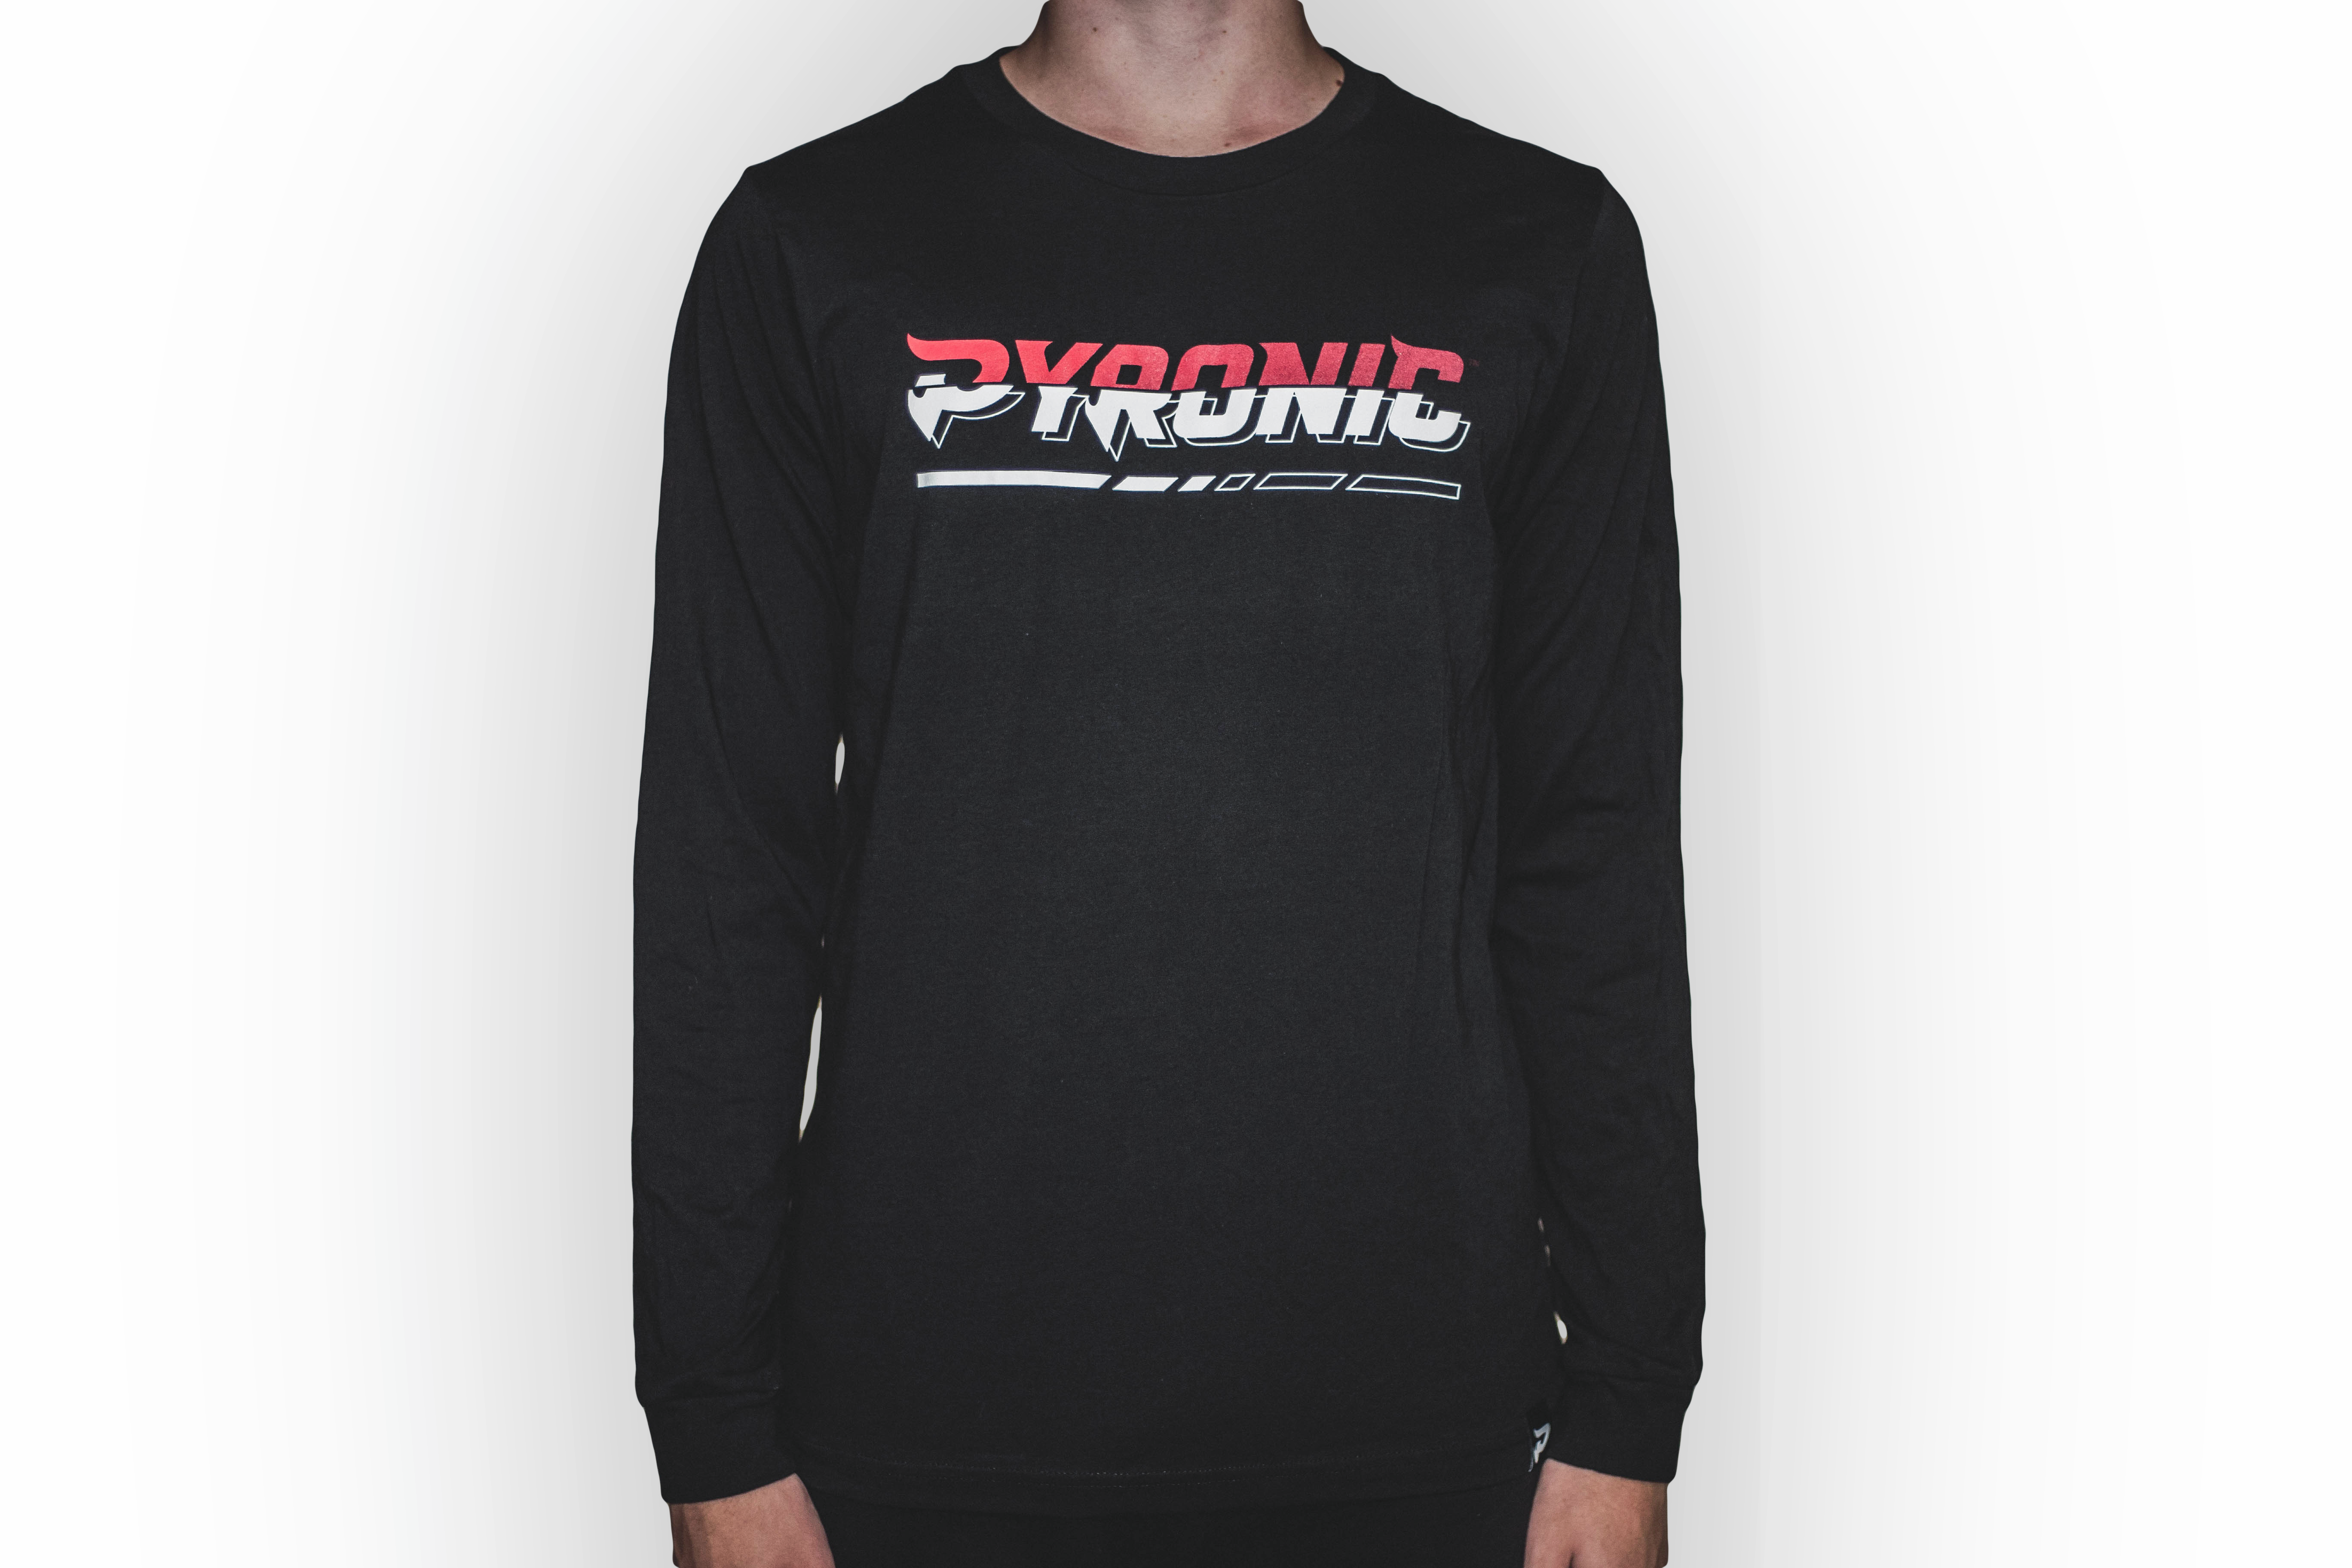 Pyronic Glitch Long Sleeve Tee